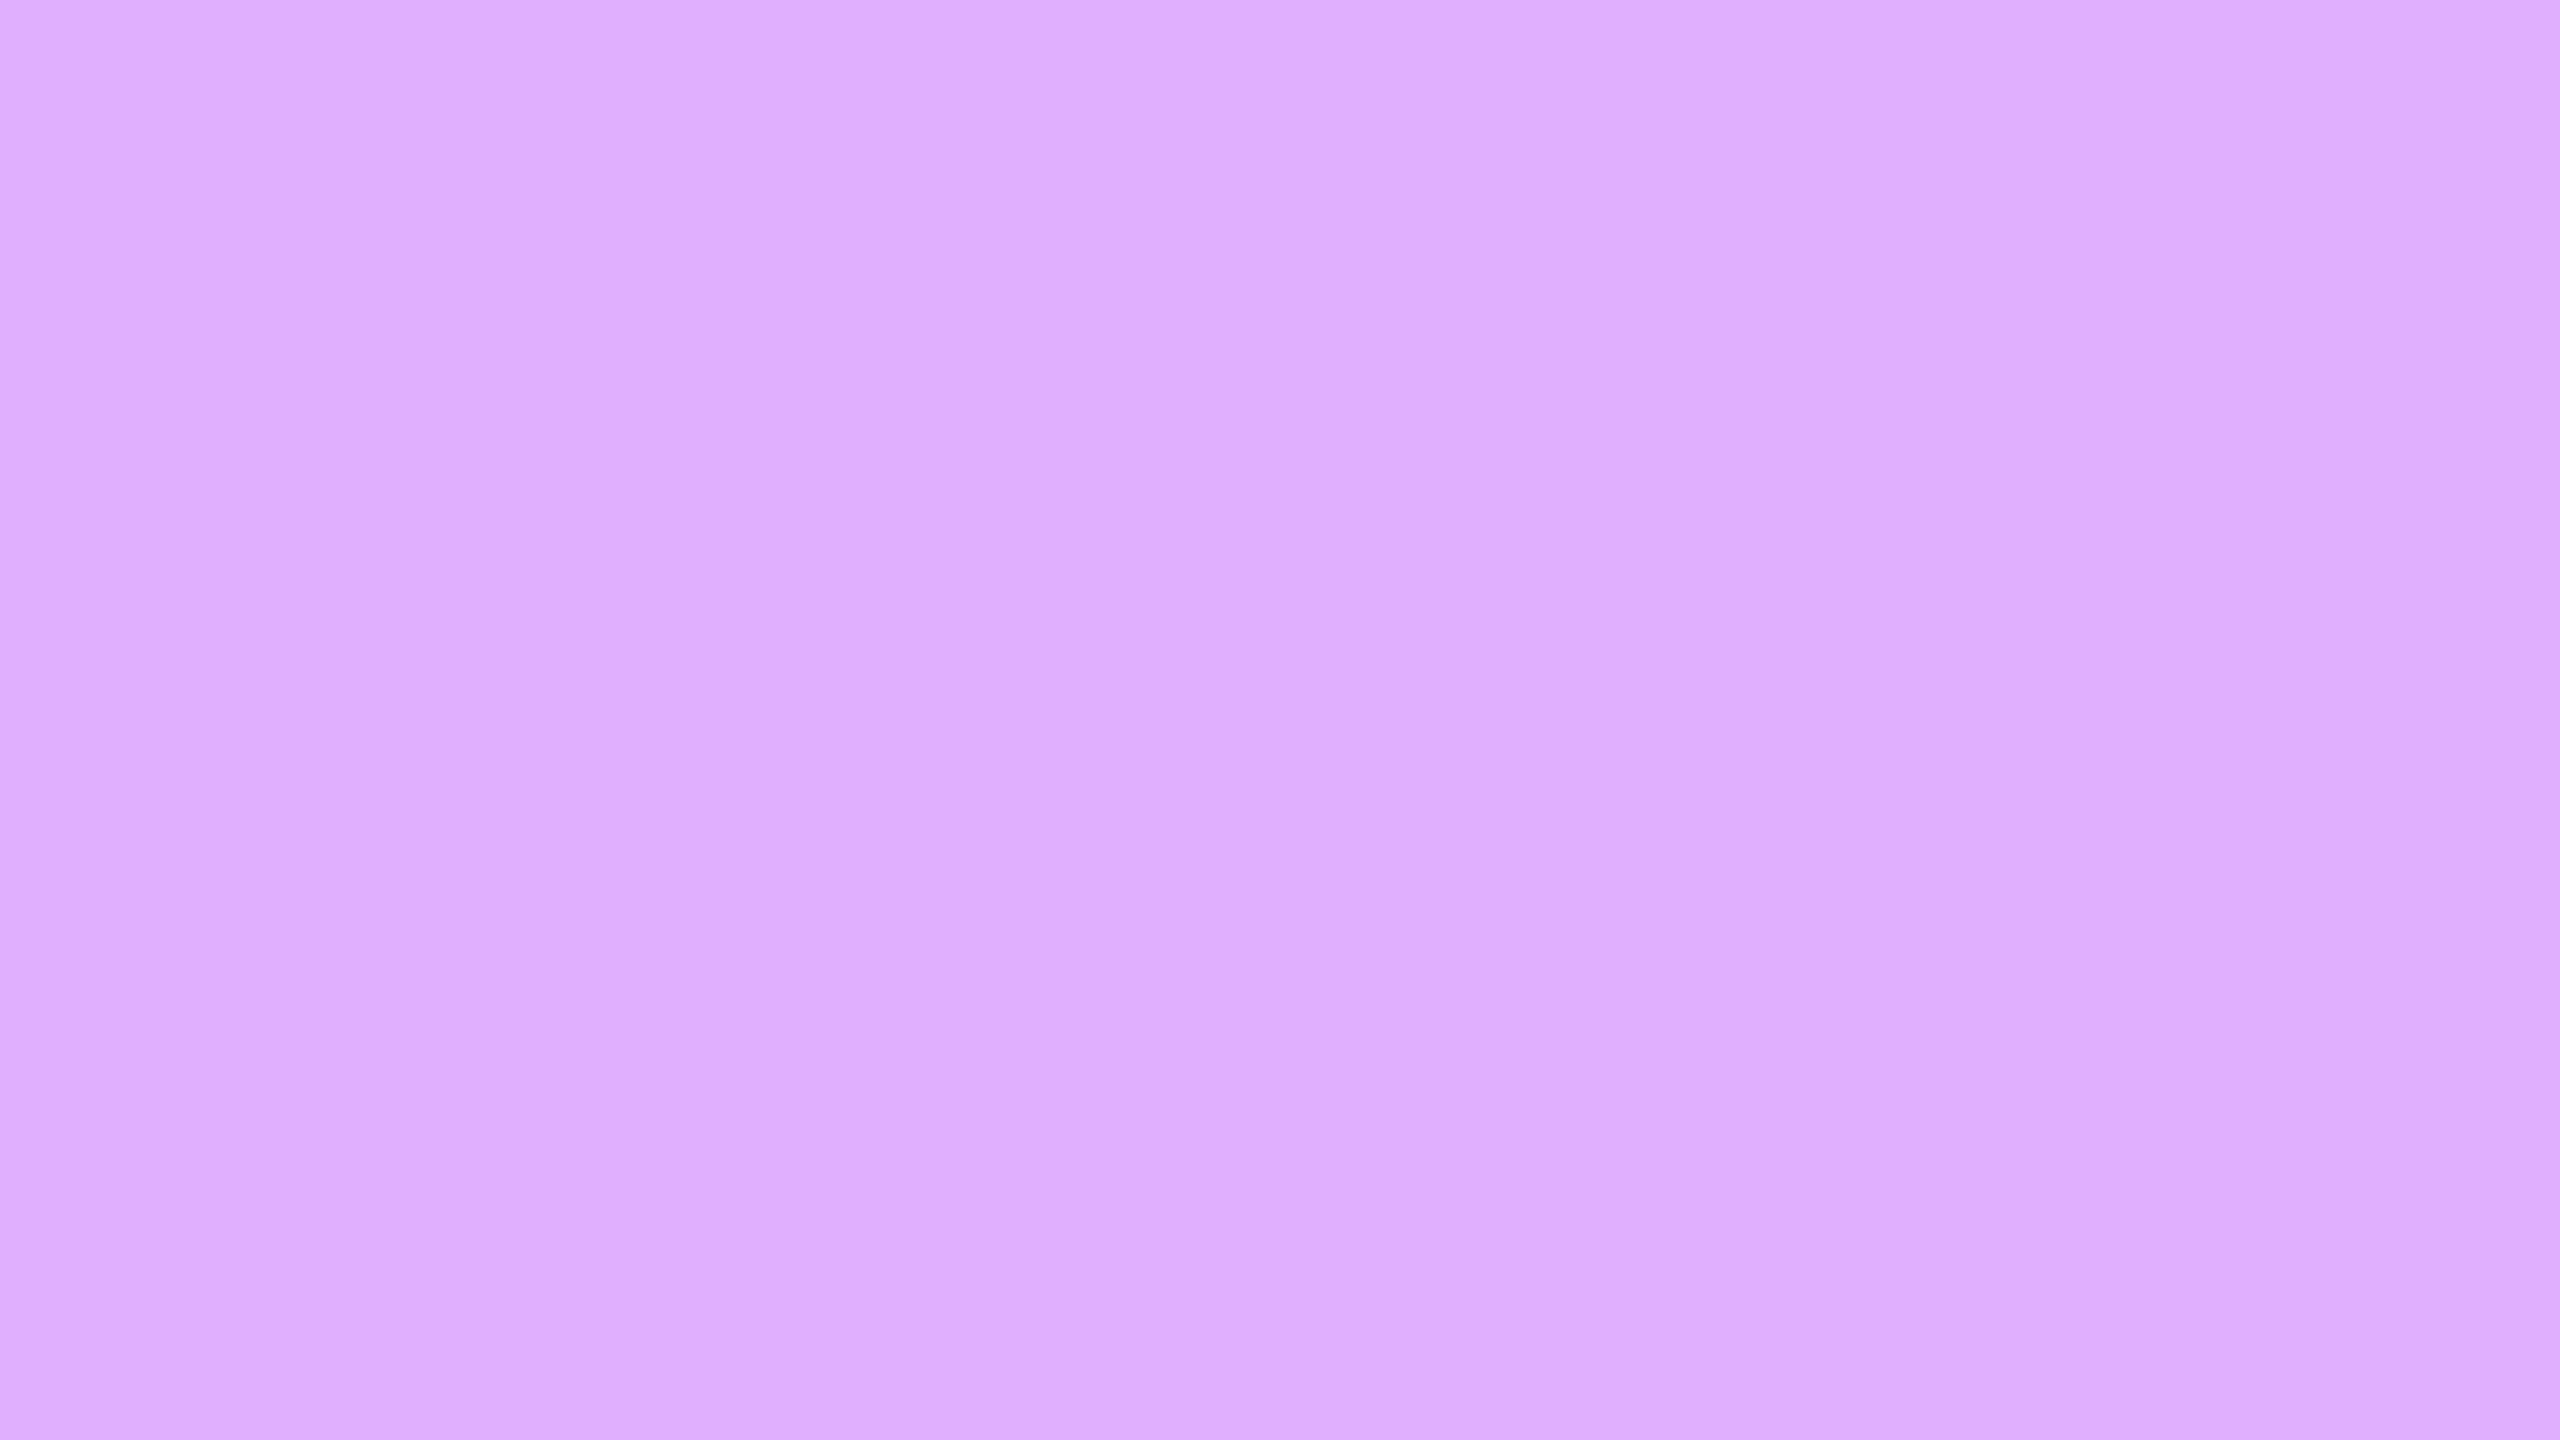 Background image and color - 2560x1440 Mauve Solid Color Background